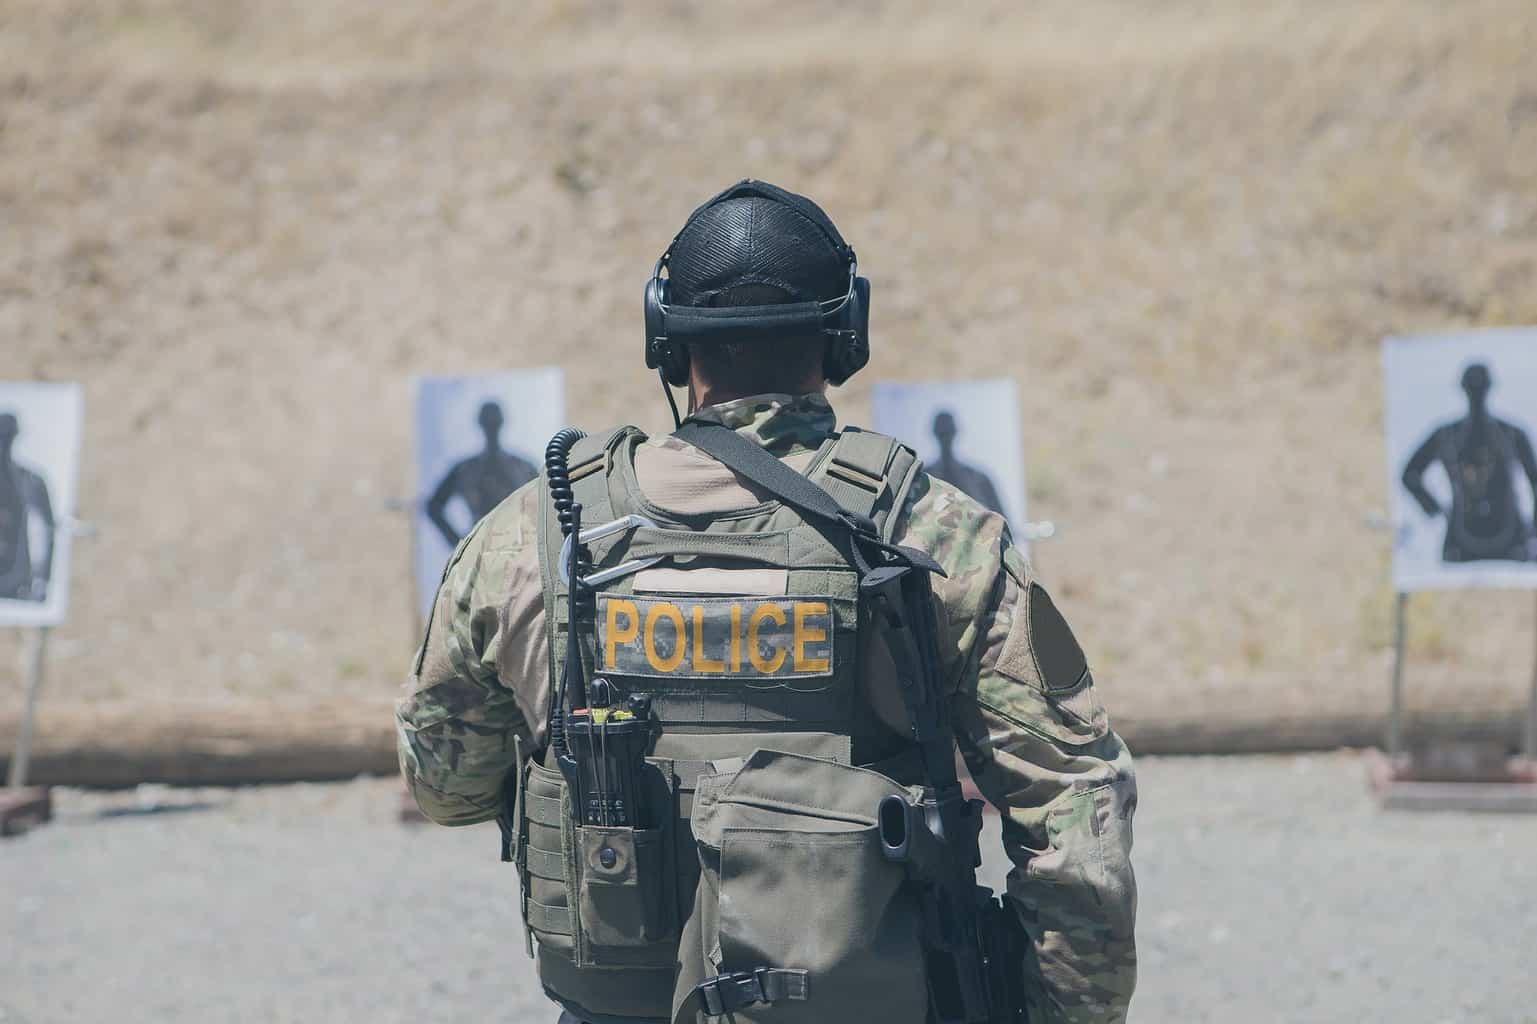 Man wearing uniform at an outdoor shooting range in California